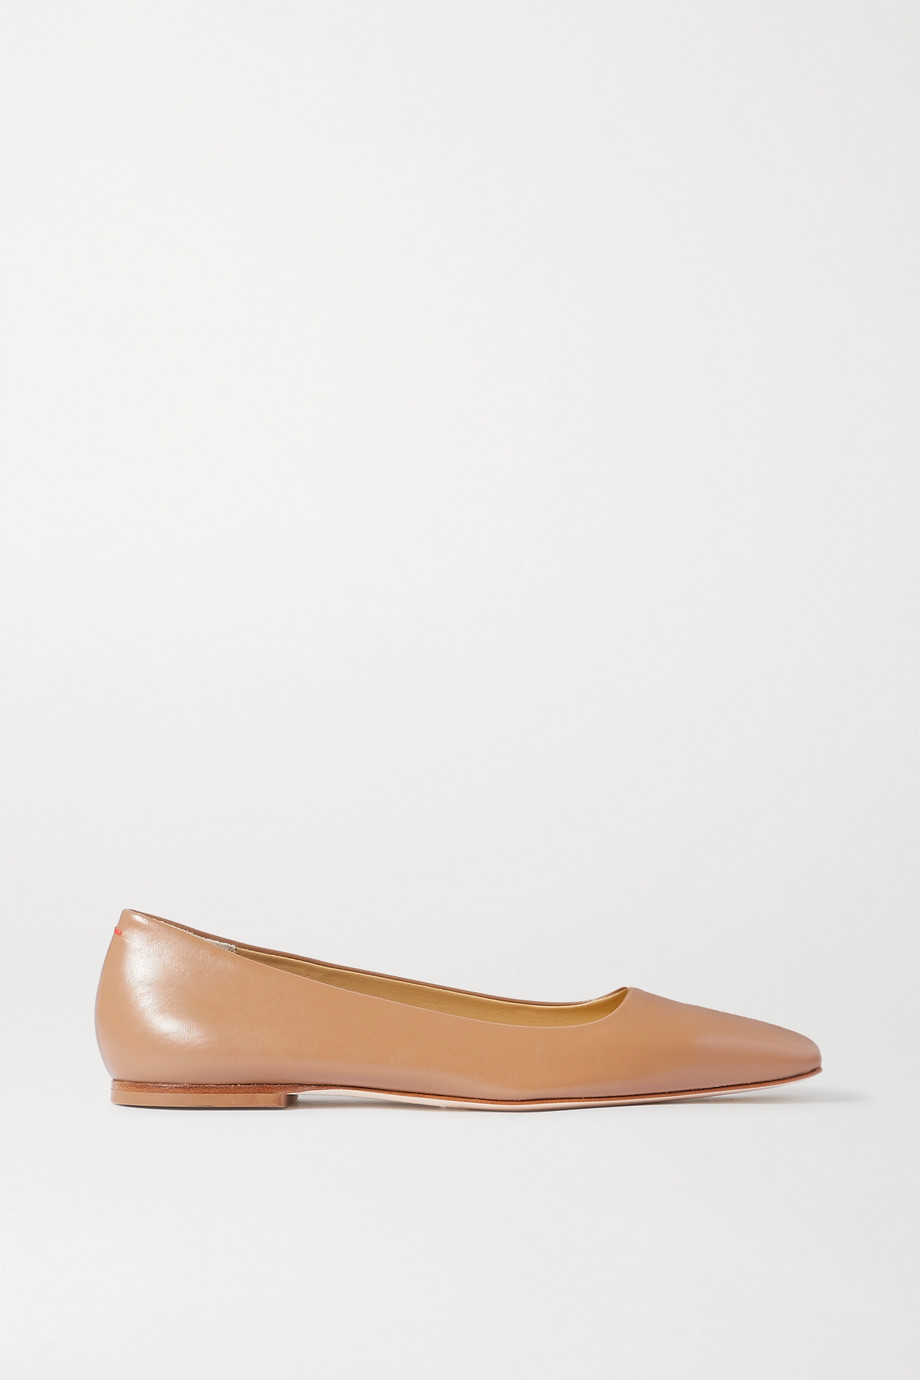 AEYDE Gina leather ballet flats